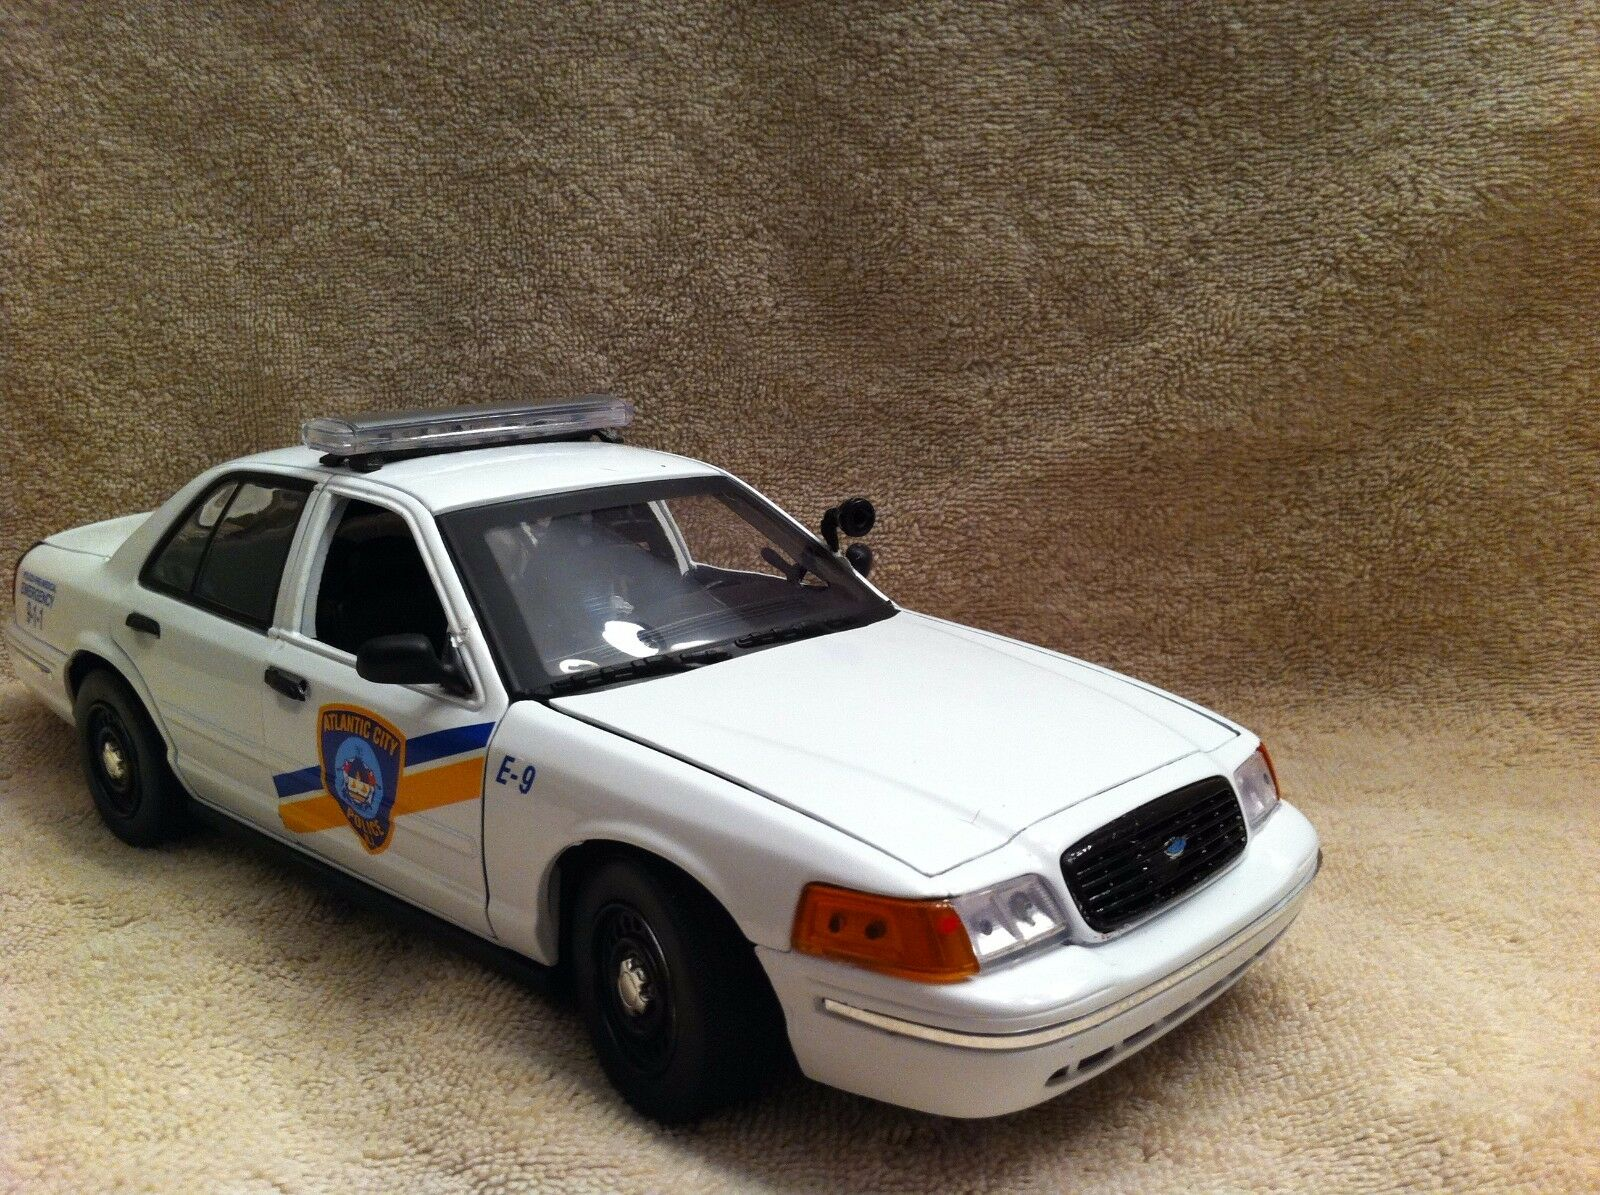 1/18 SCALE ATLANTIC CITY NJ PD FORD CV UT WITH WORKING LIGHTS AND SIREN DIECAST